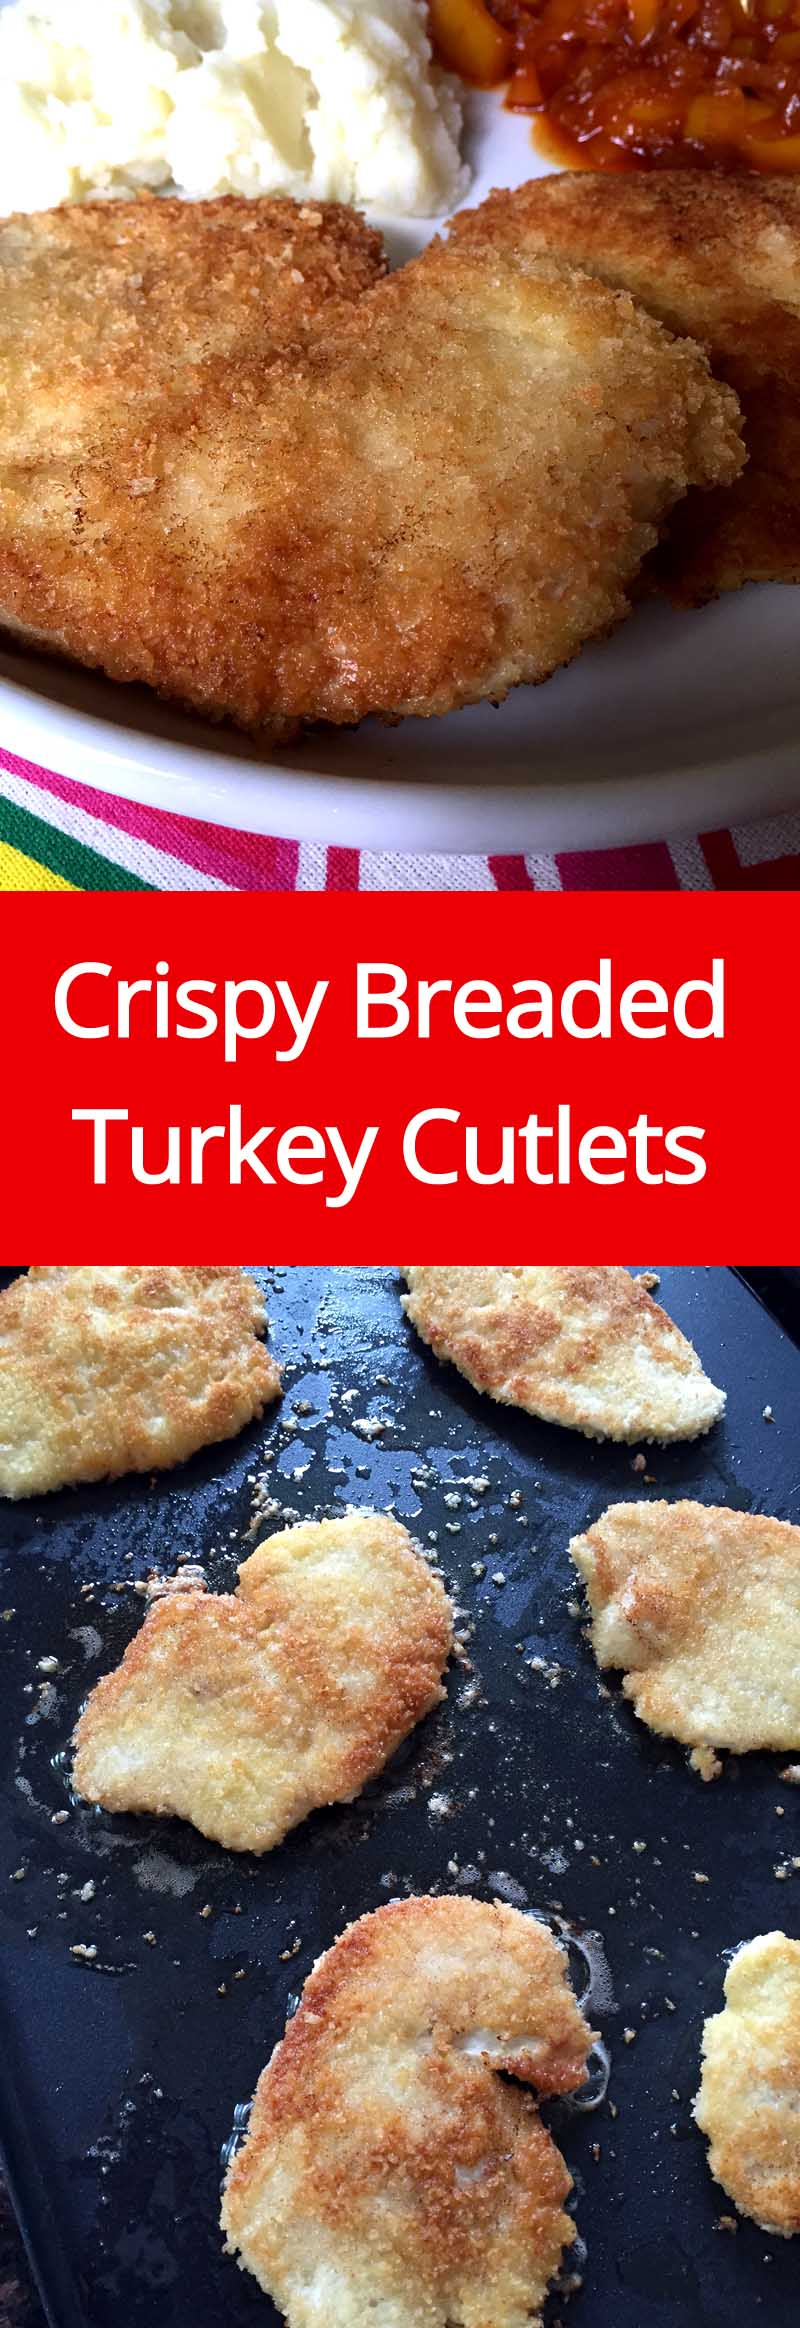 Crispy Panko Breaded Pan-Fried Turkey Cutlets Recipe | MelanieCooks.com